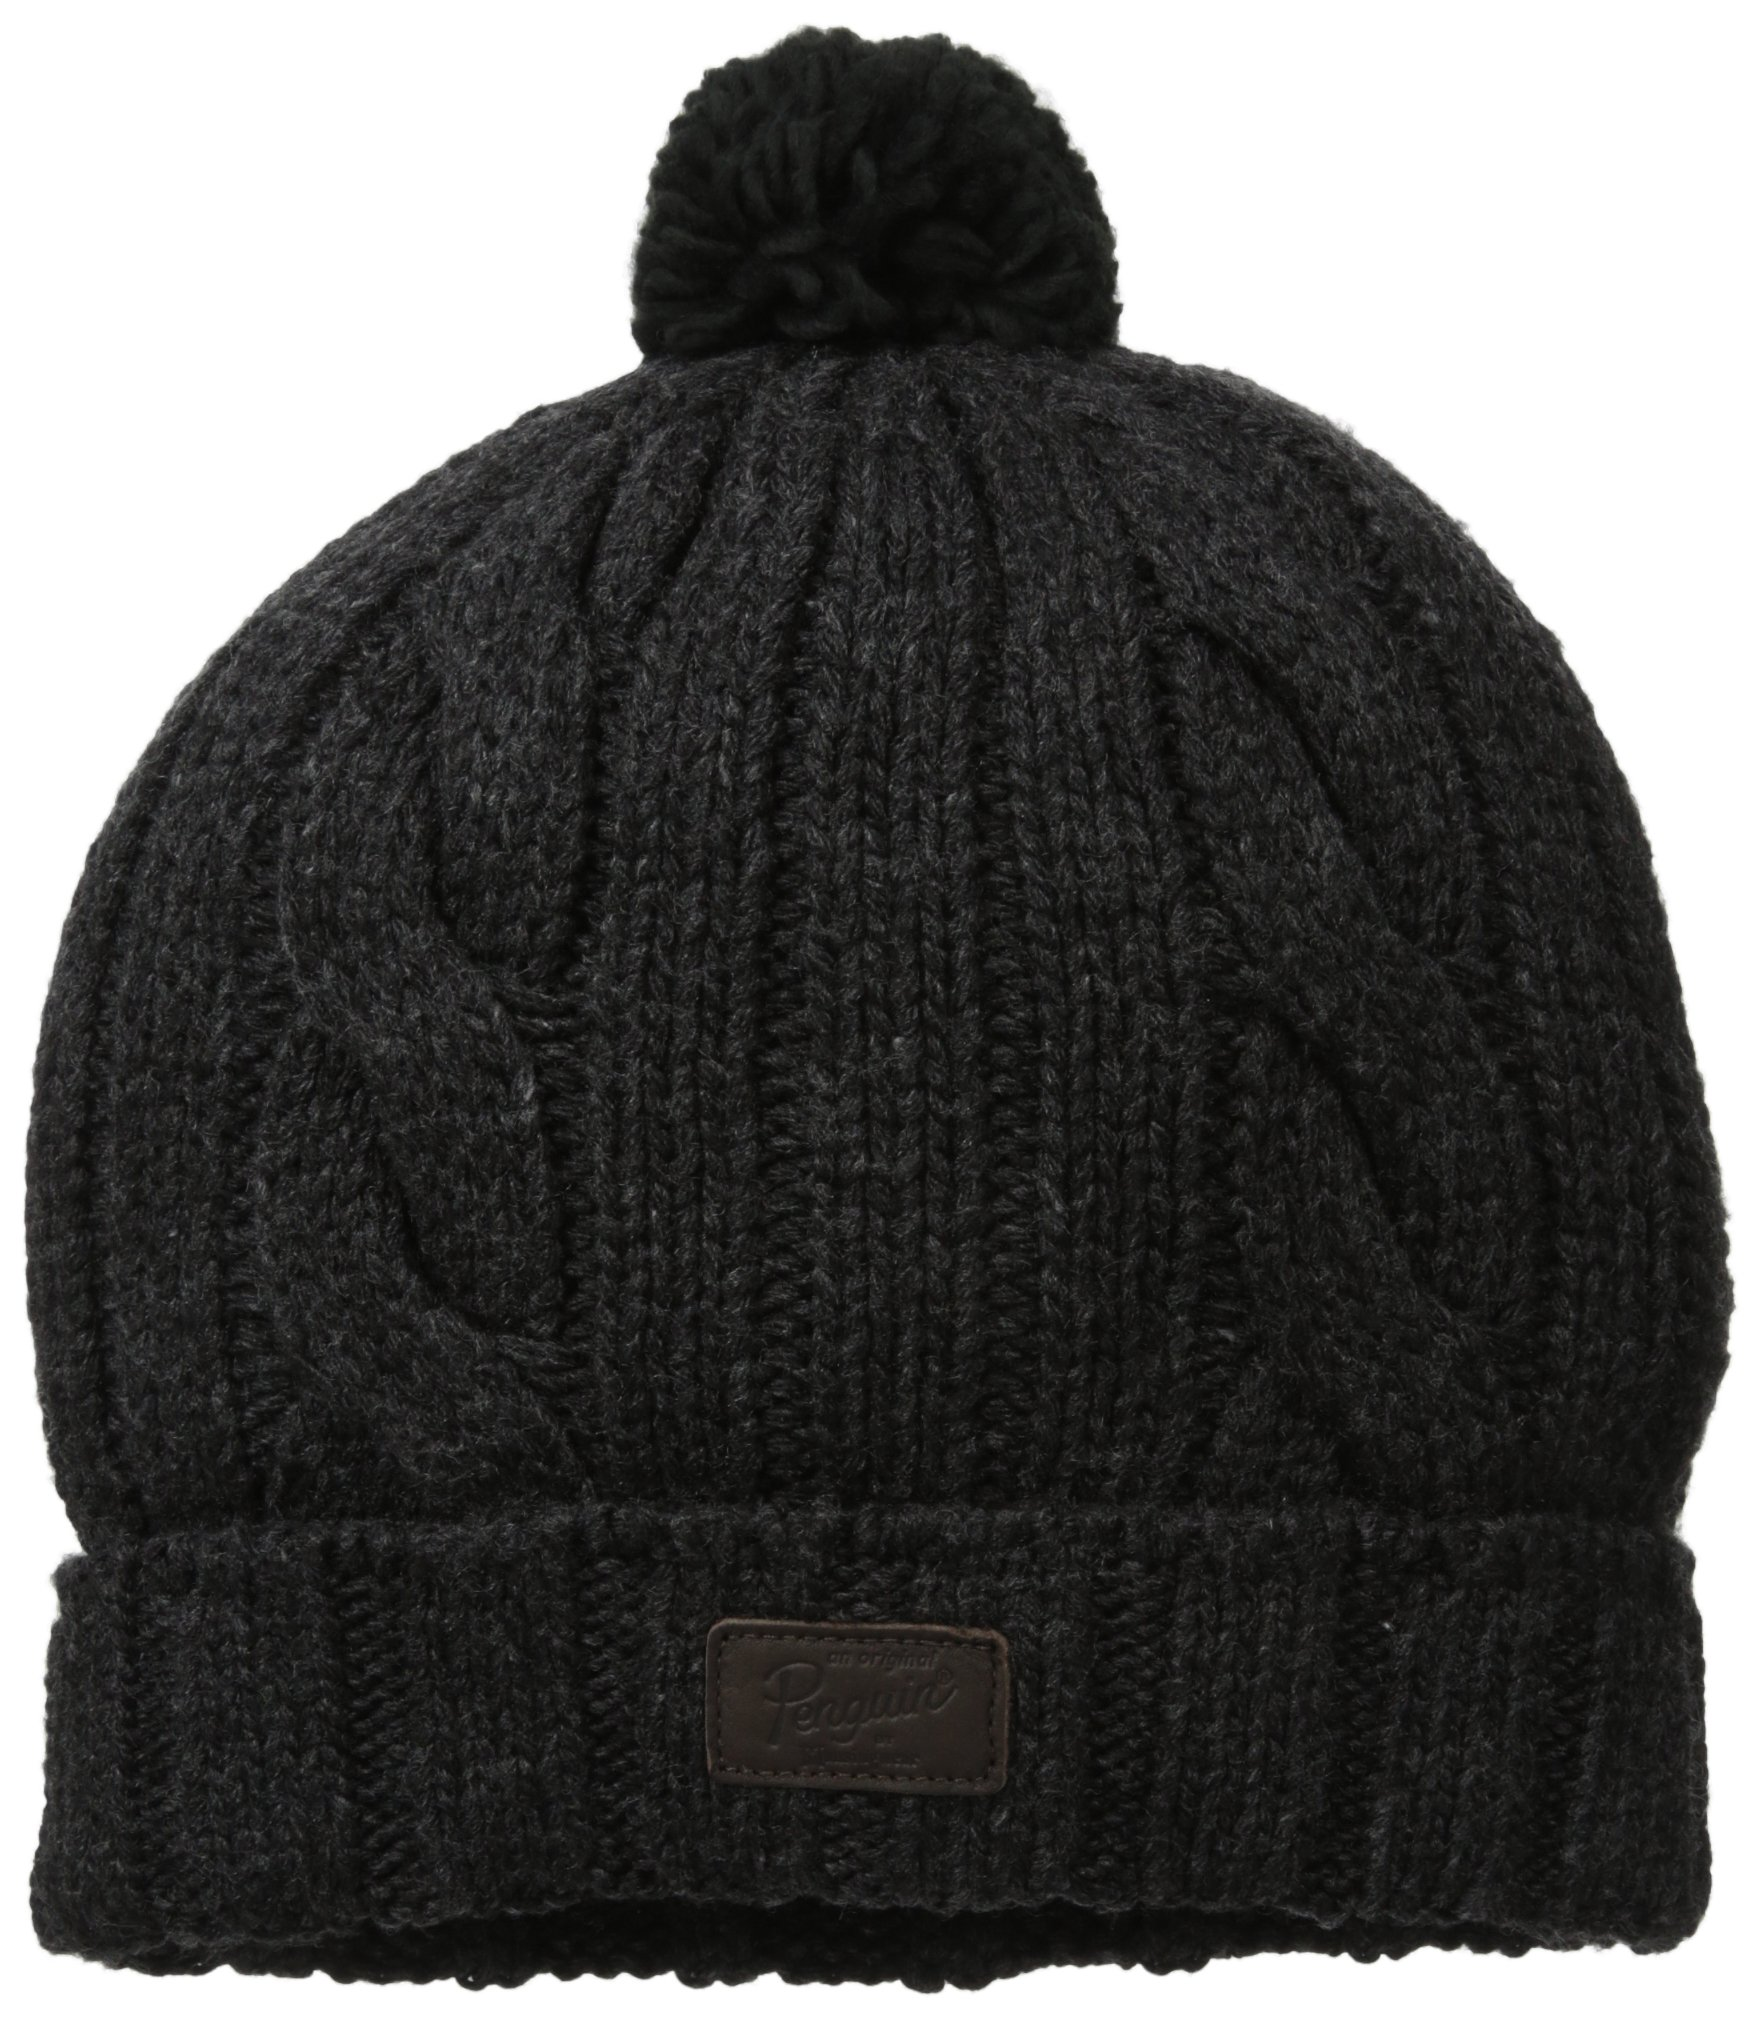 Original Penguin Men's Albert Pom Watch Cap, Black, One Size